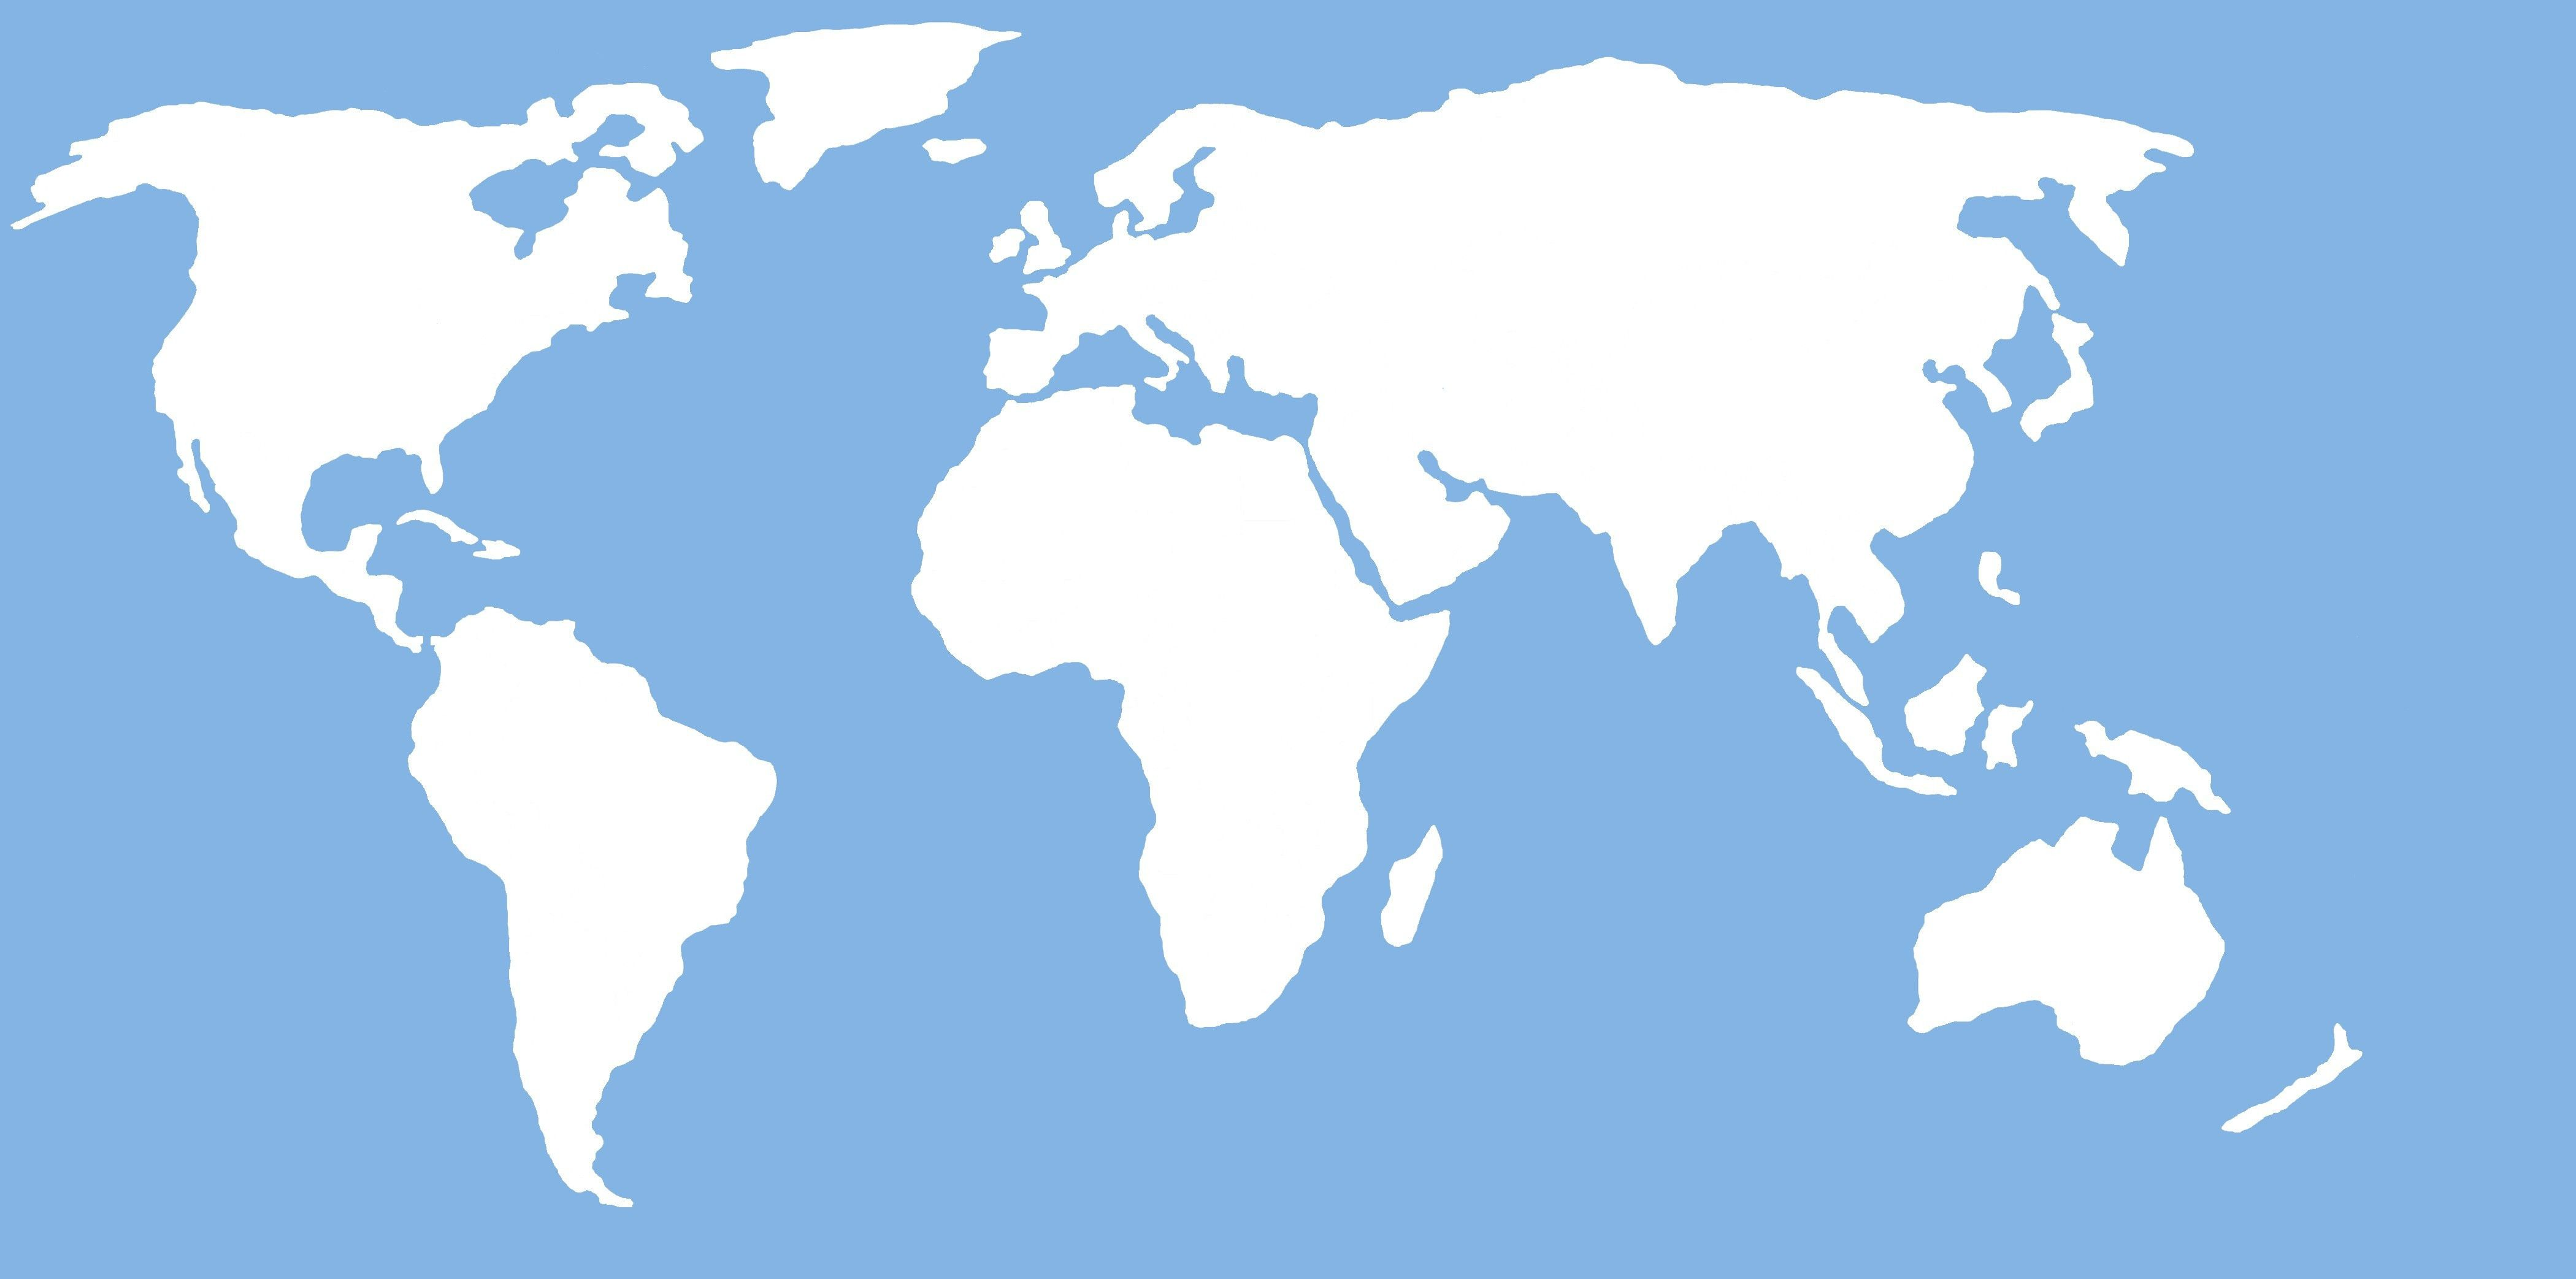 World Map Vector Simple New Simplified World Map Divided